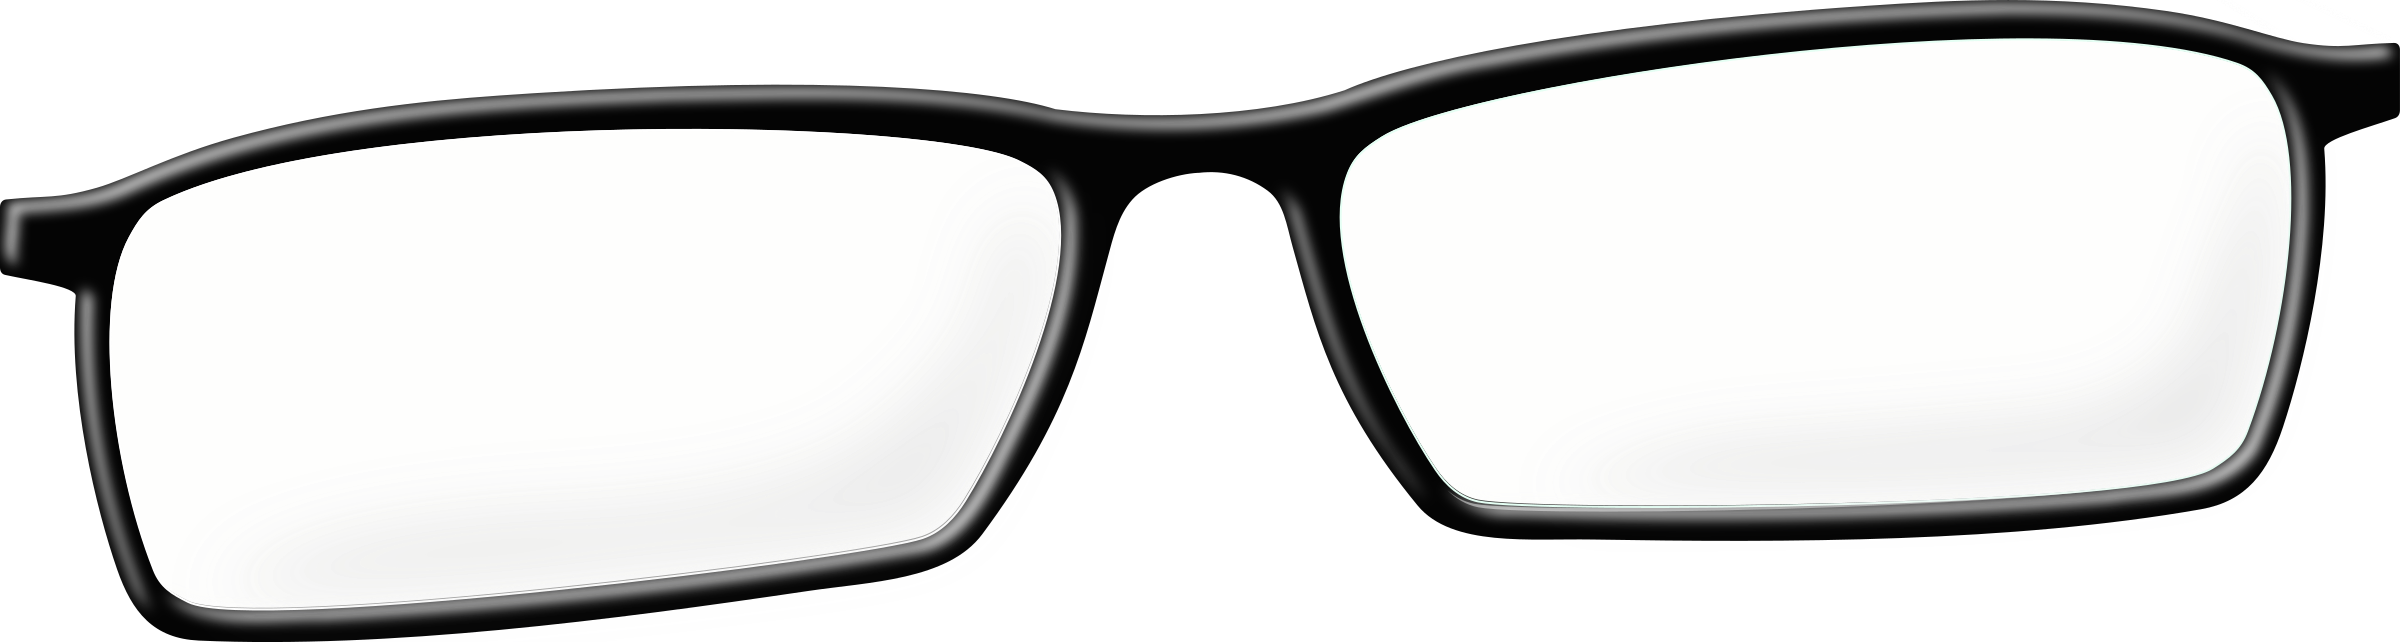 Vision clipart spex. Glasses icons png free